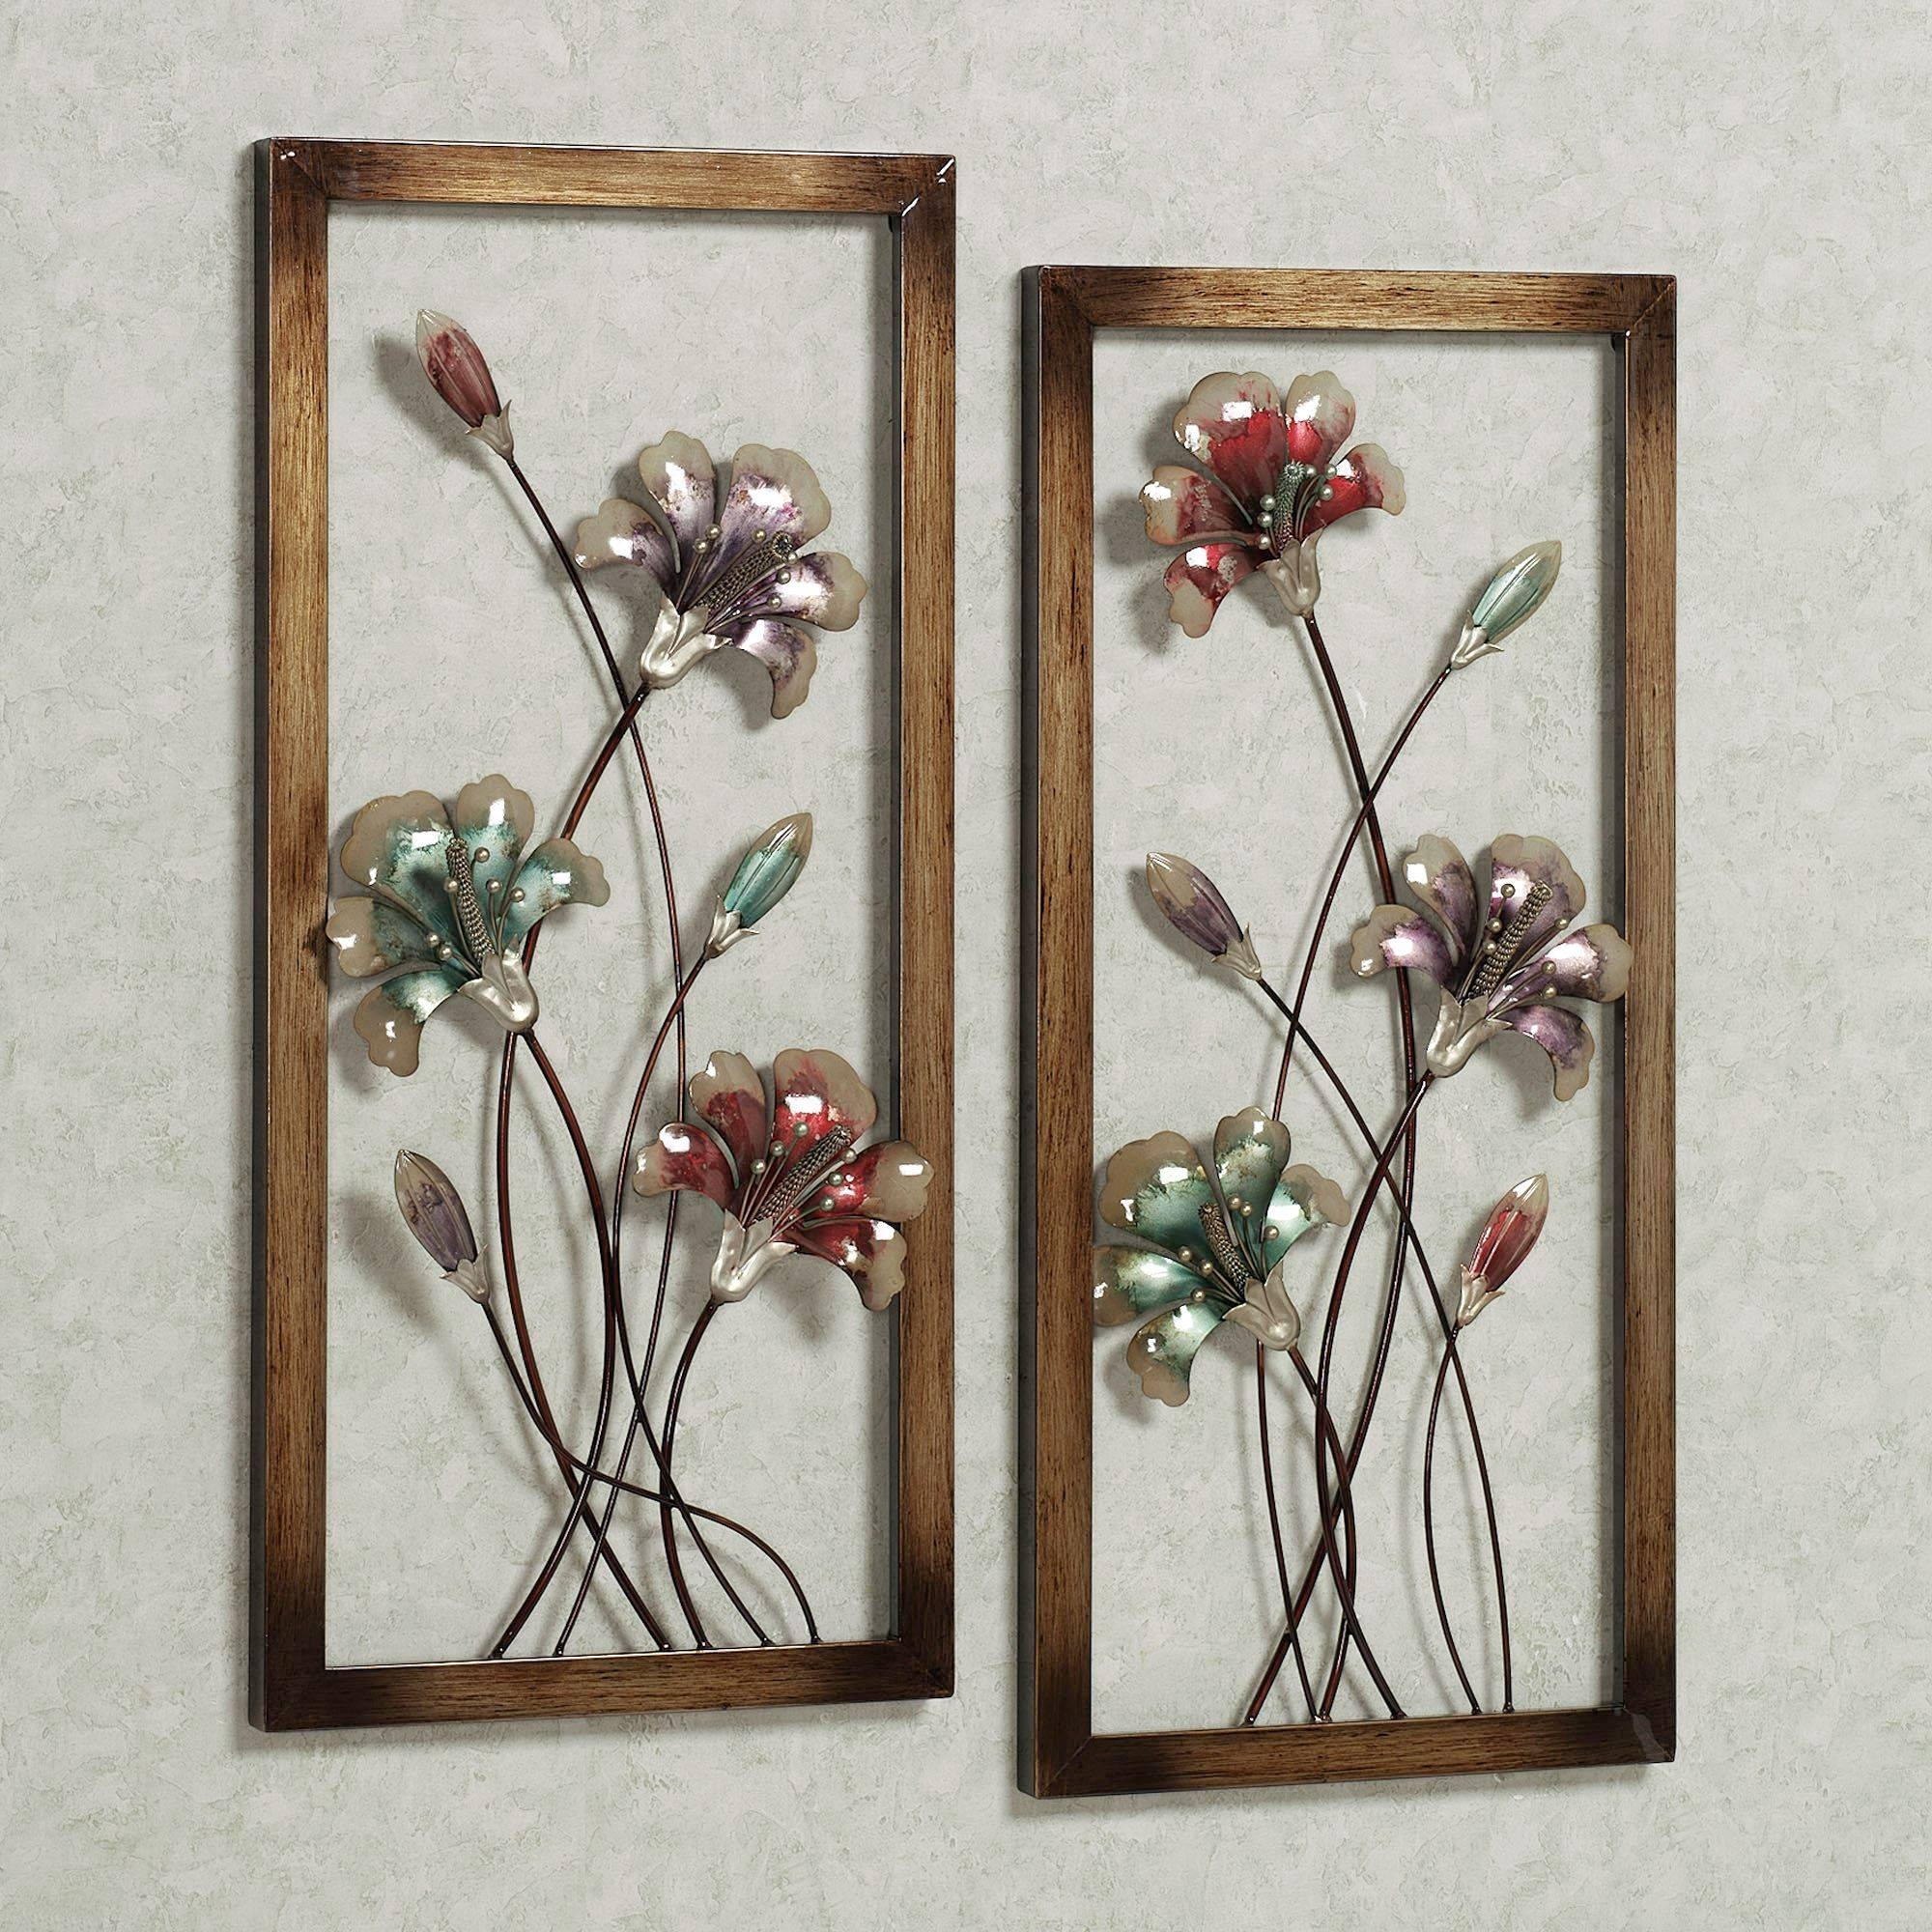 Garden Whispers Floral Metal Wall Art Panel Set For Most Up To Date Metal Wall Art For Gardens (Gallery 11 of 20)